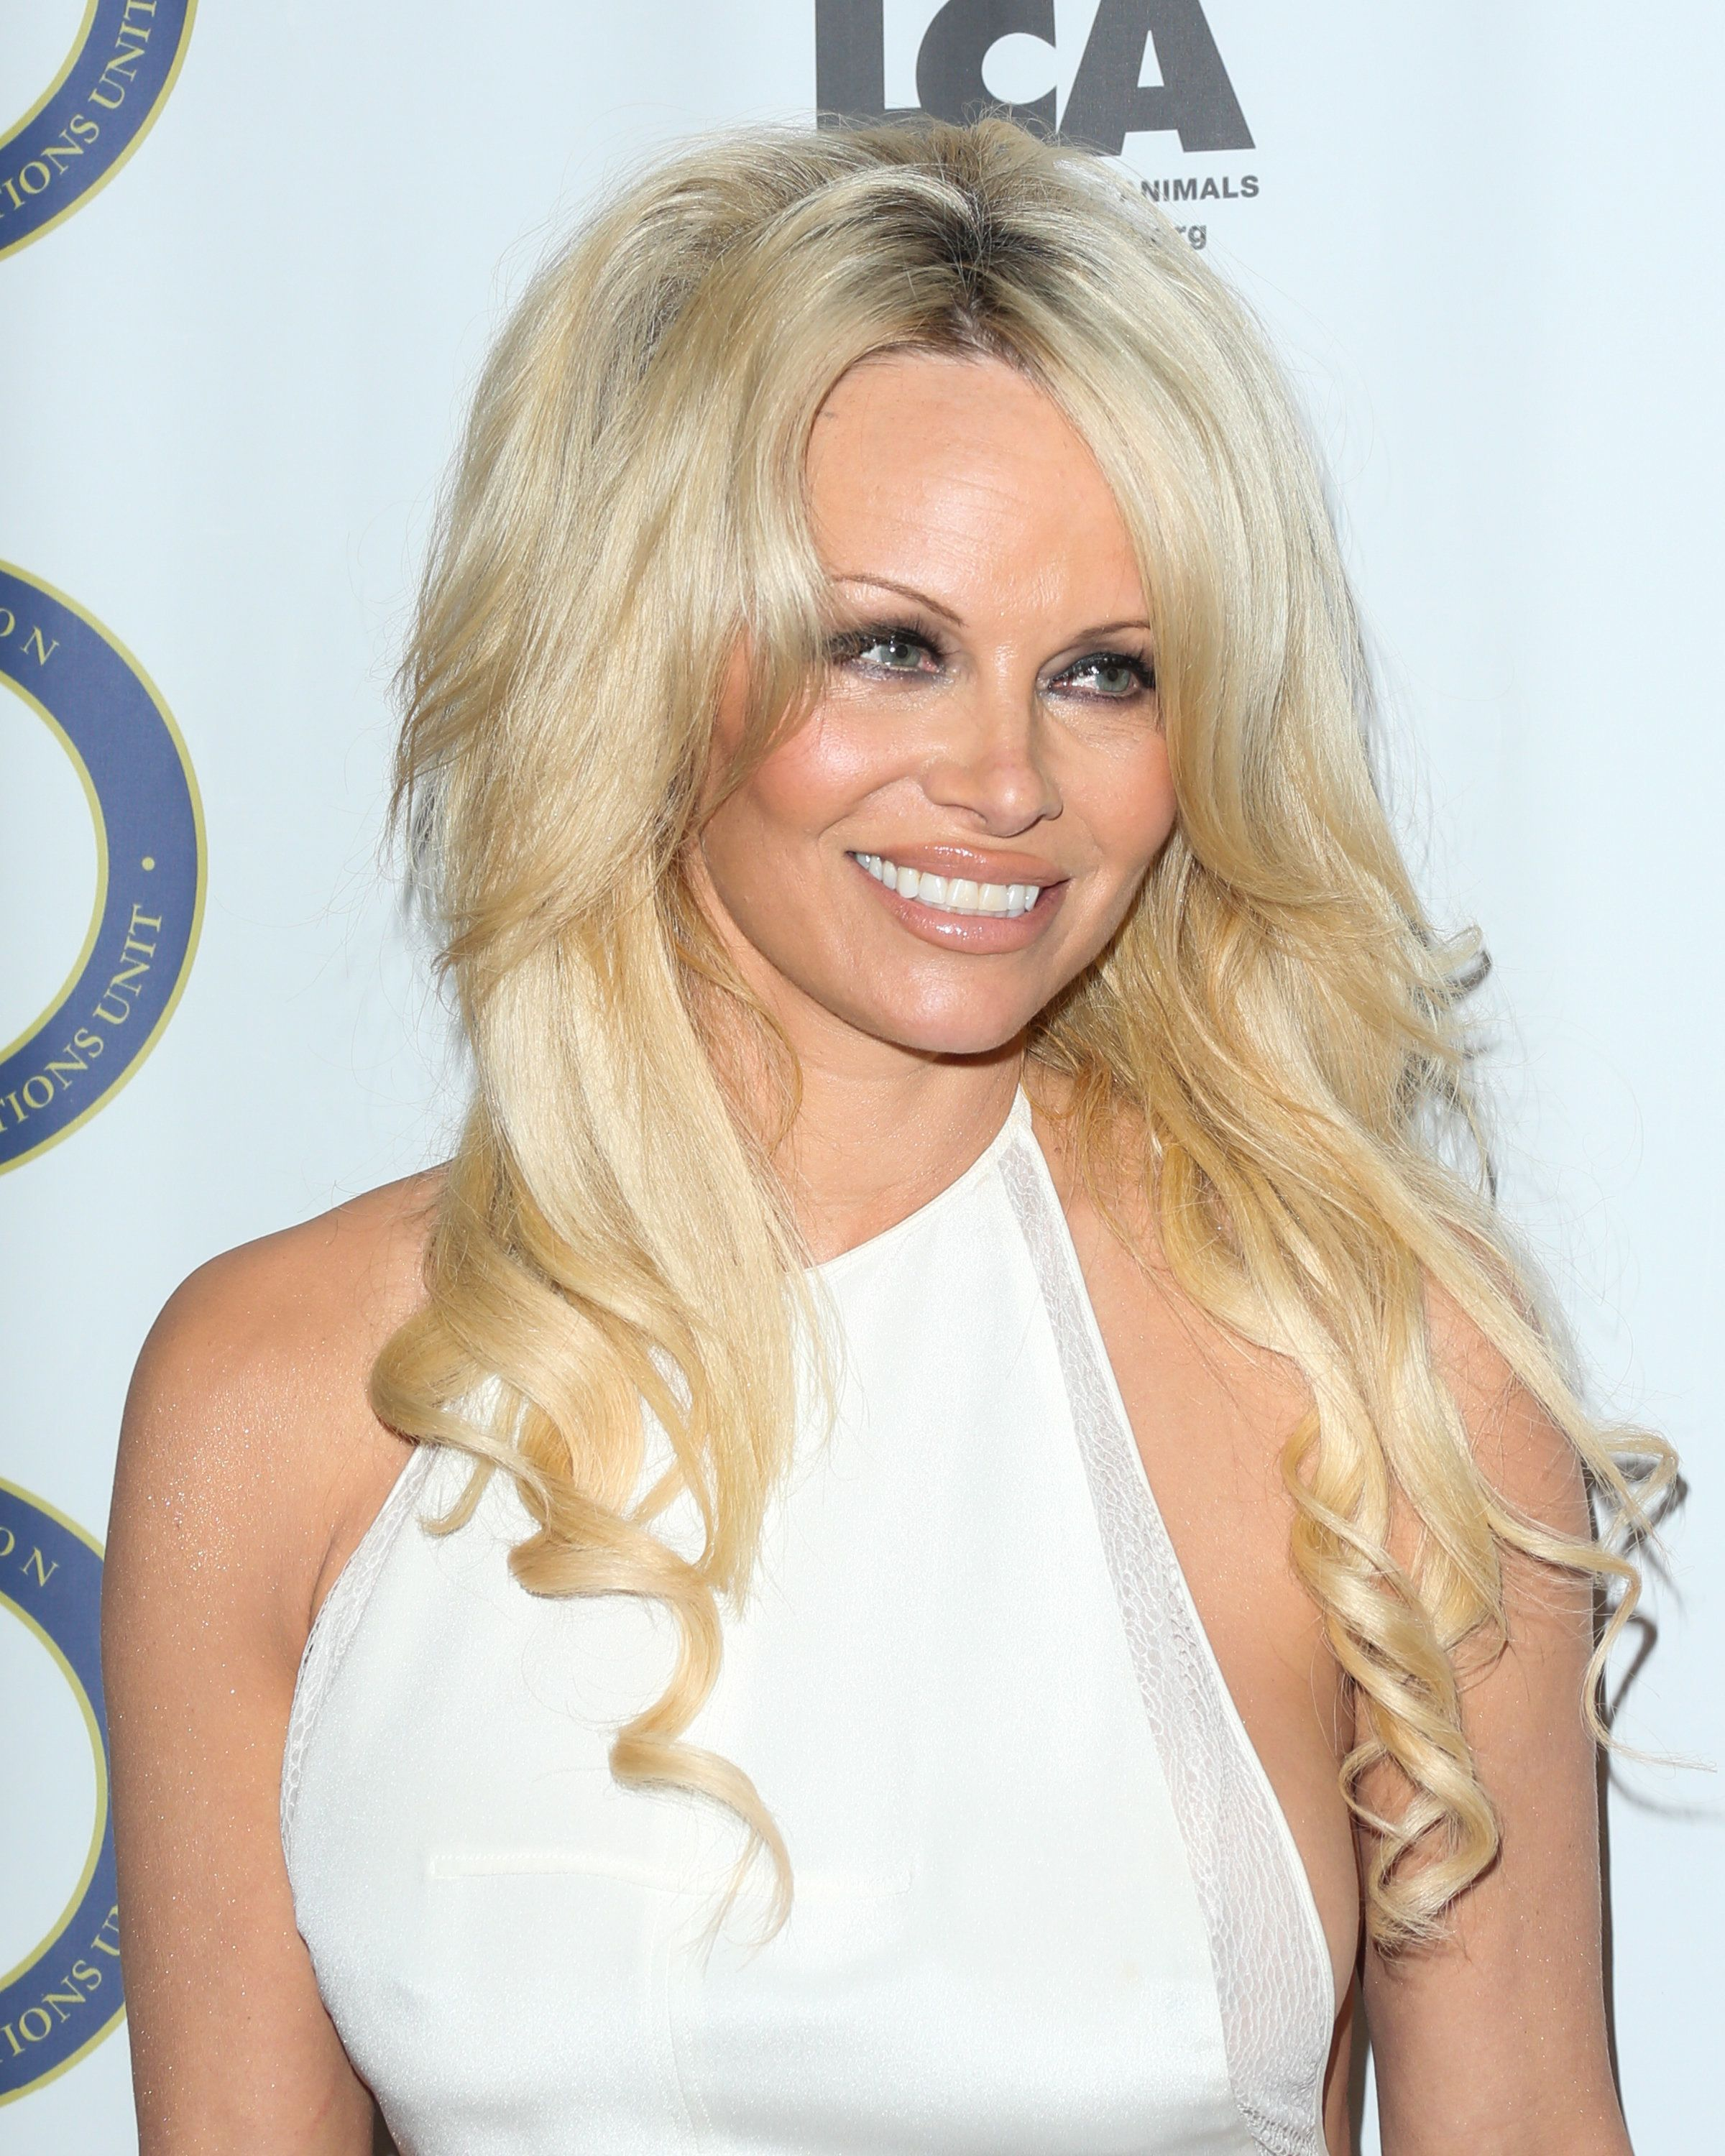 BEVERLY HILLS, CA - OCTOBER 24:  Actress Pamela Anderson attends the Last Chance For Animals Benefit Gala at The Beverly Hilton Hotel on October 24, 2015 in Beverly Hills, California.  (Photo by Paul Archuleta/WireImage)